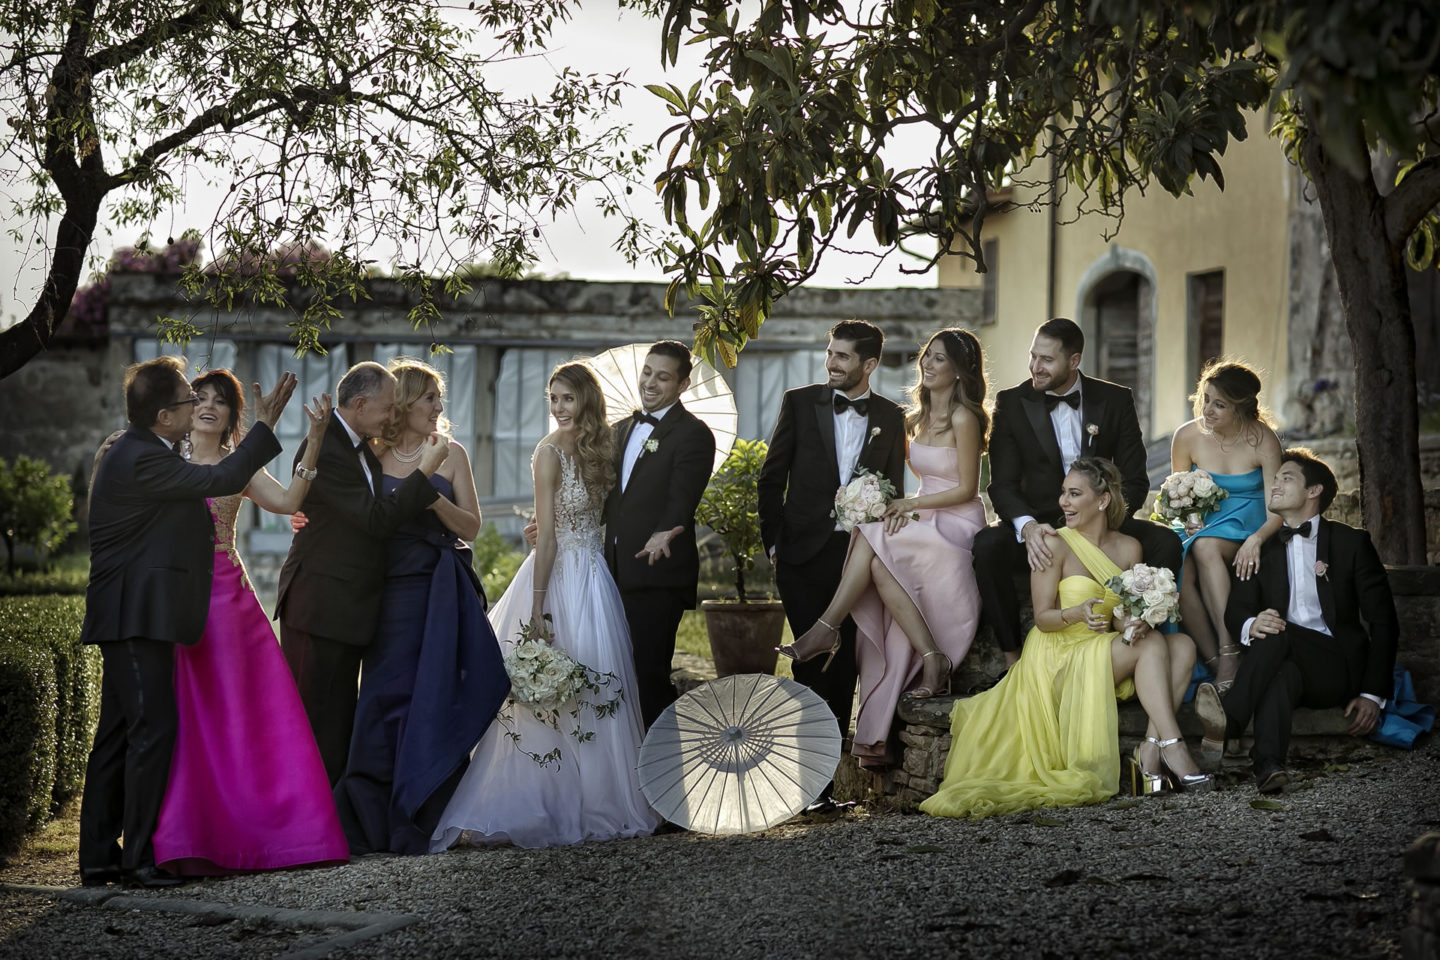 Big Family :: Groups Bridal Parties :: David Bastianoni wedding photographer